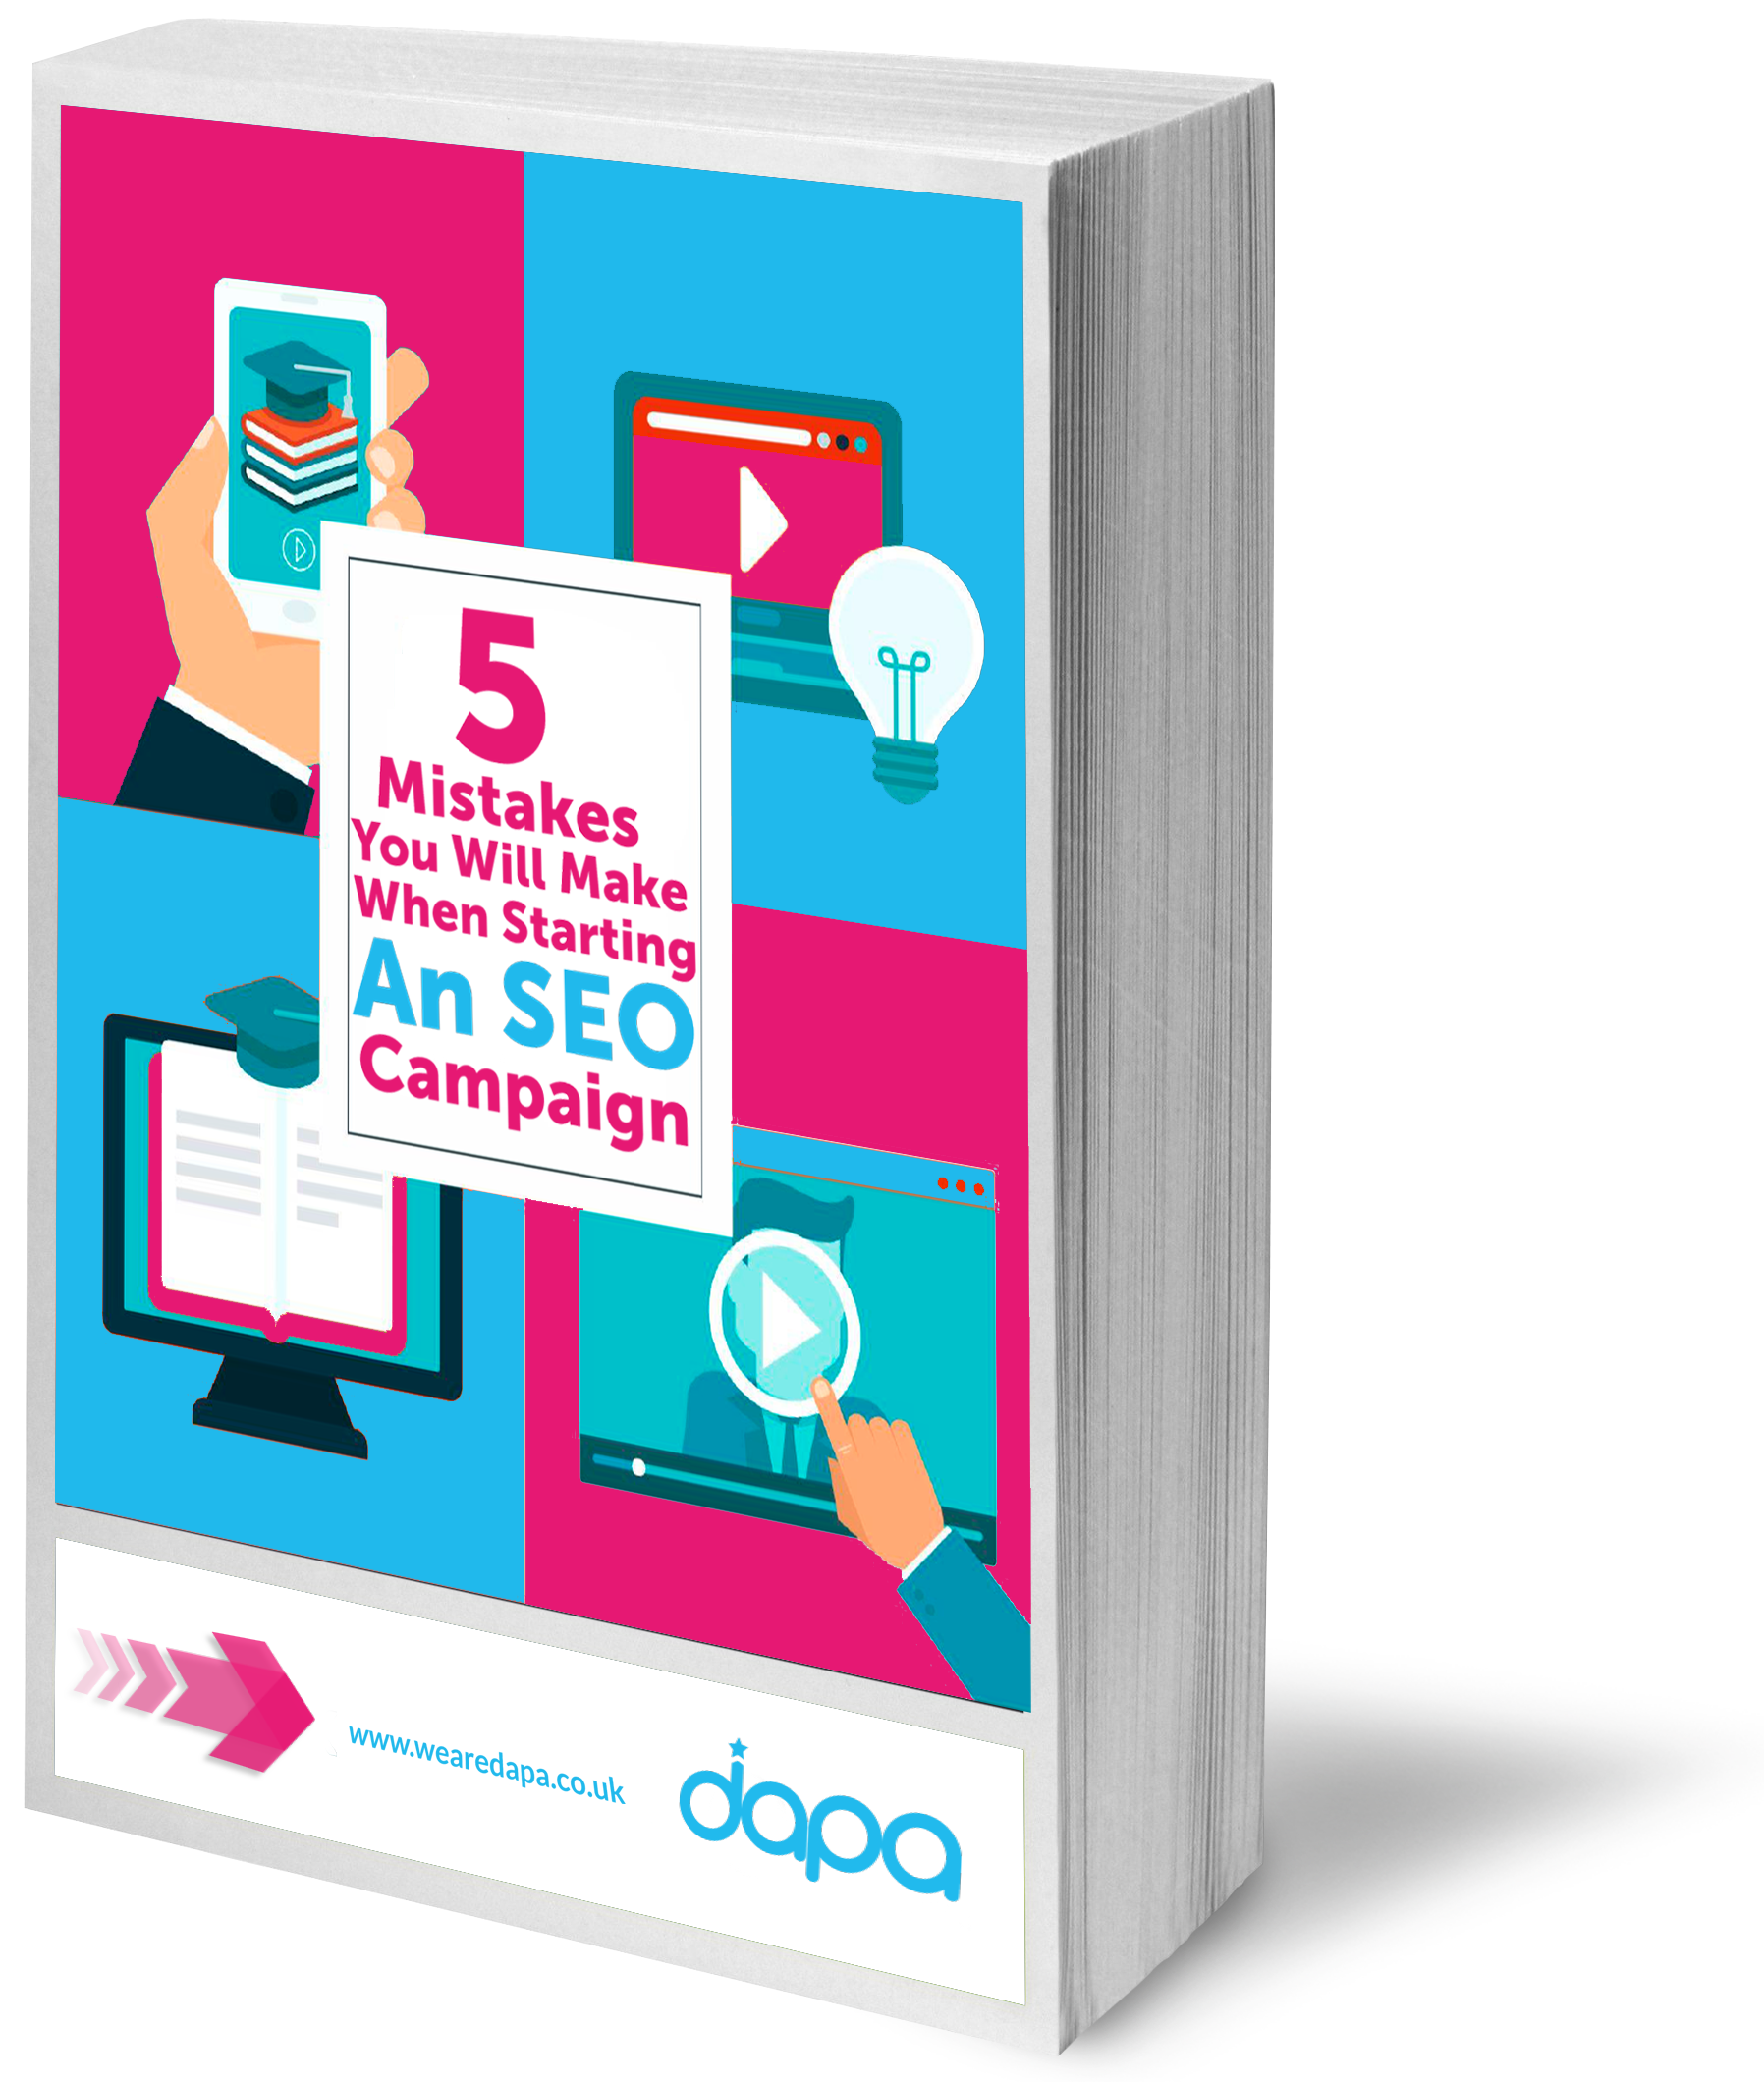 SEO Specialists Ebook